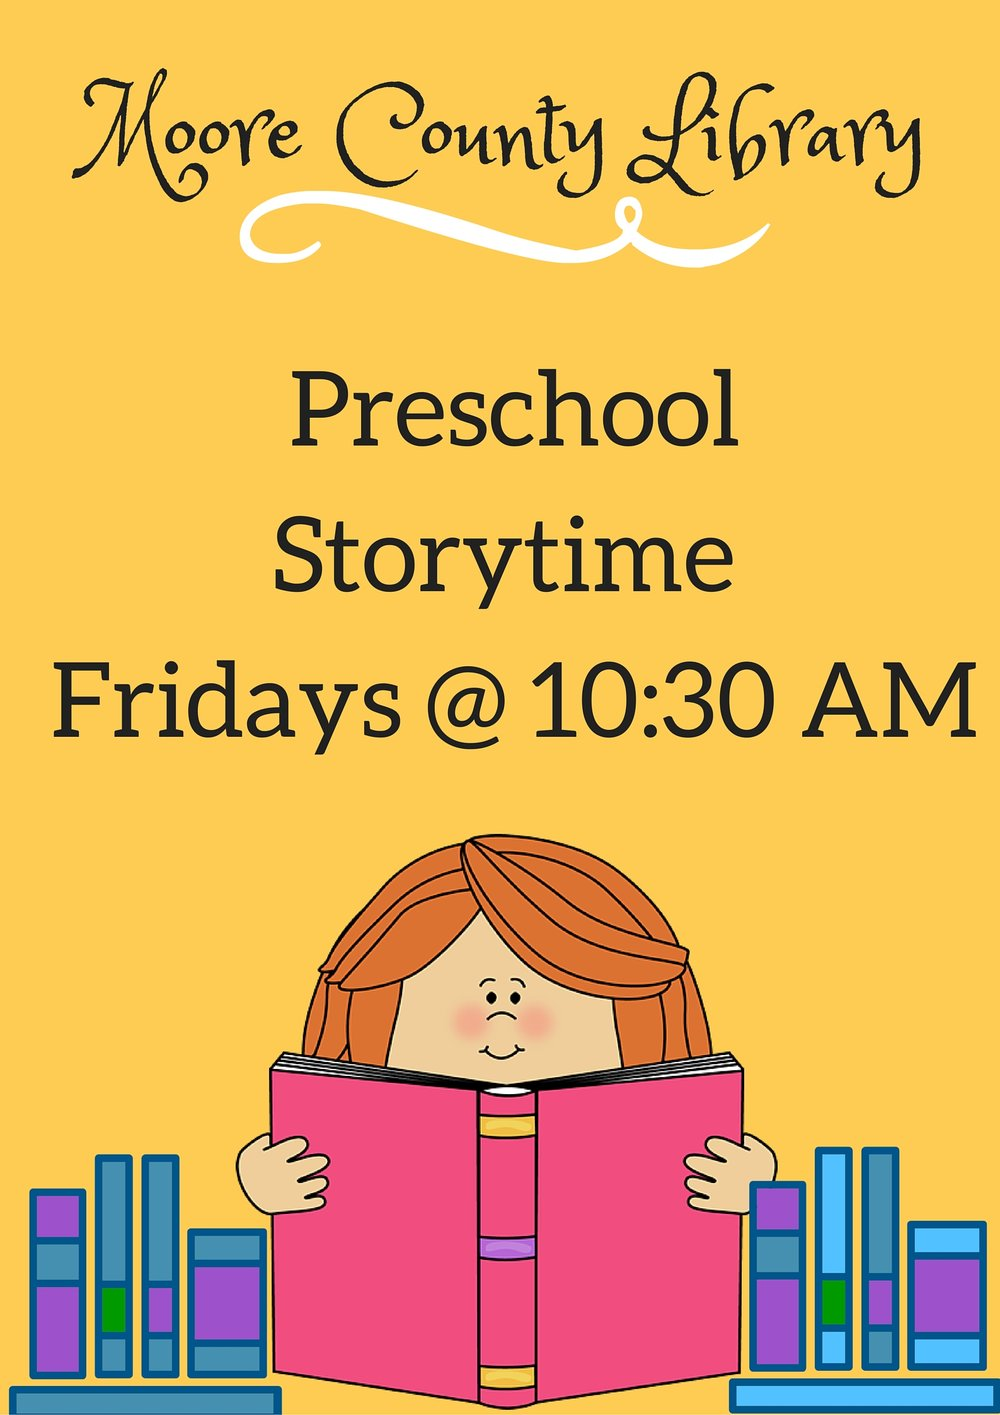 Moore_County_Library_storytime_1.29.16.jpg